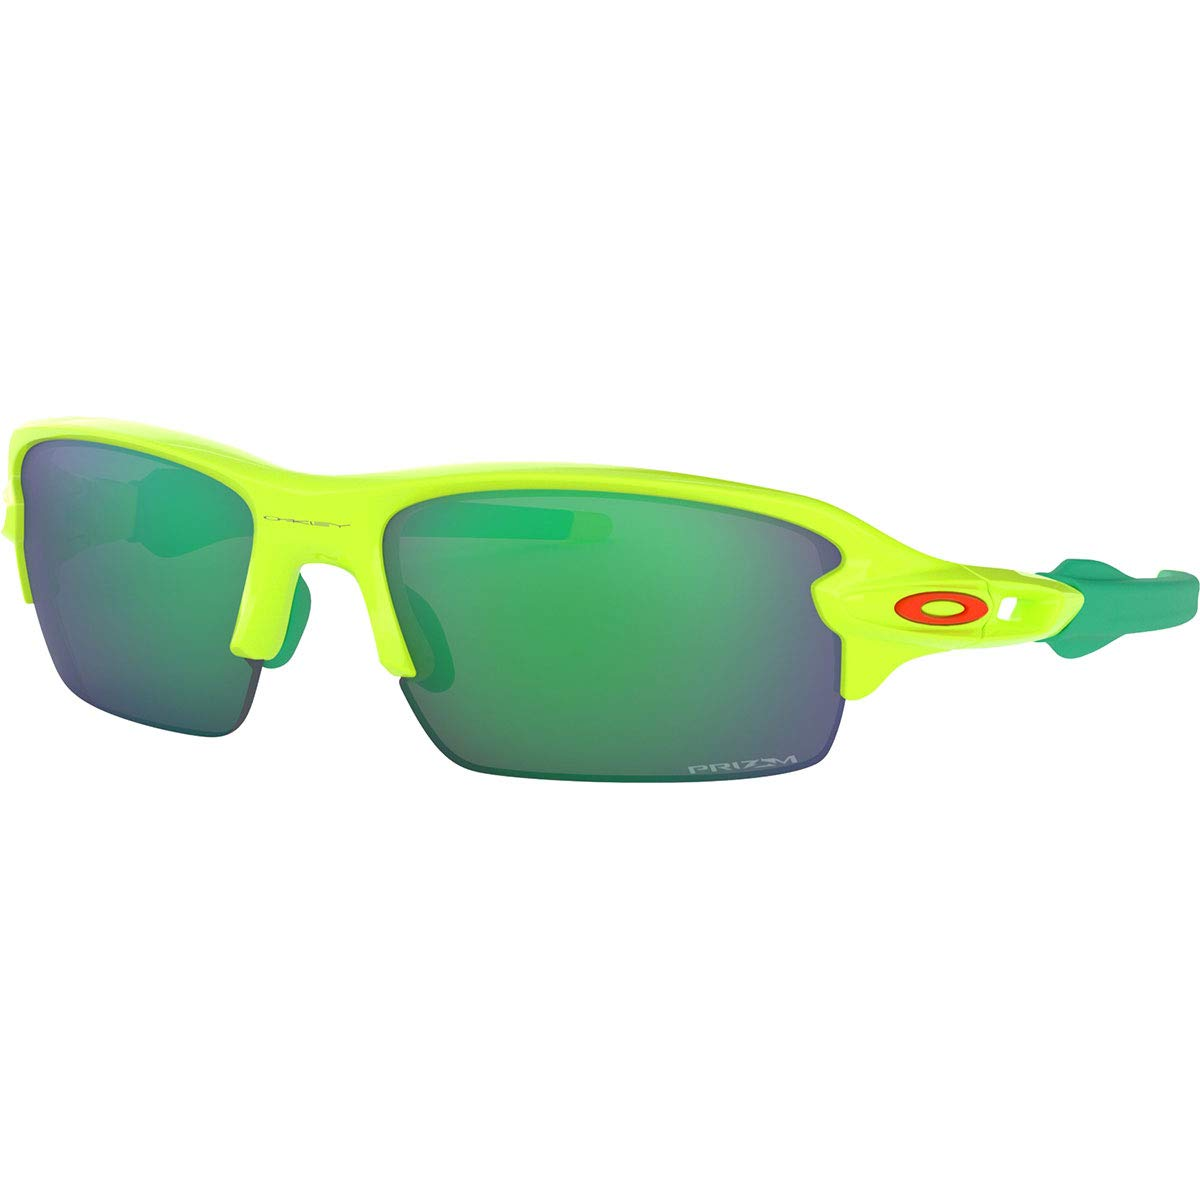 Oakley Boys OJ9005 Flak XS Rectangular Sunglasses, Retina Burn/Prizm Jade, 59 mm by Oakley